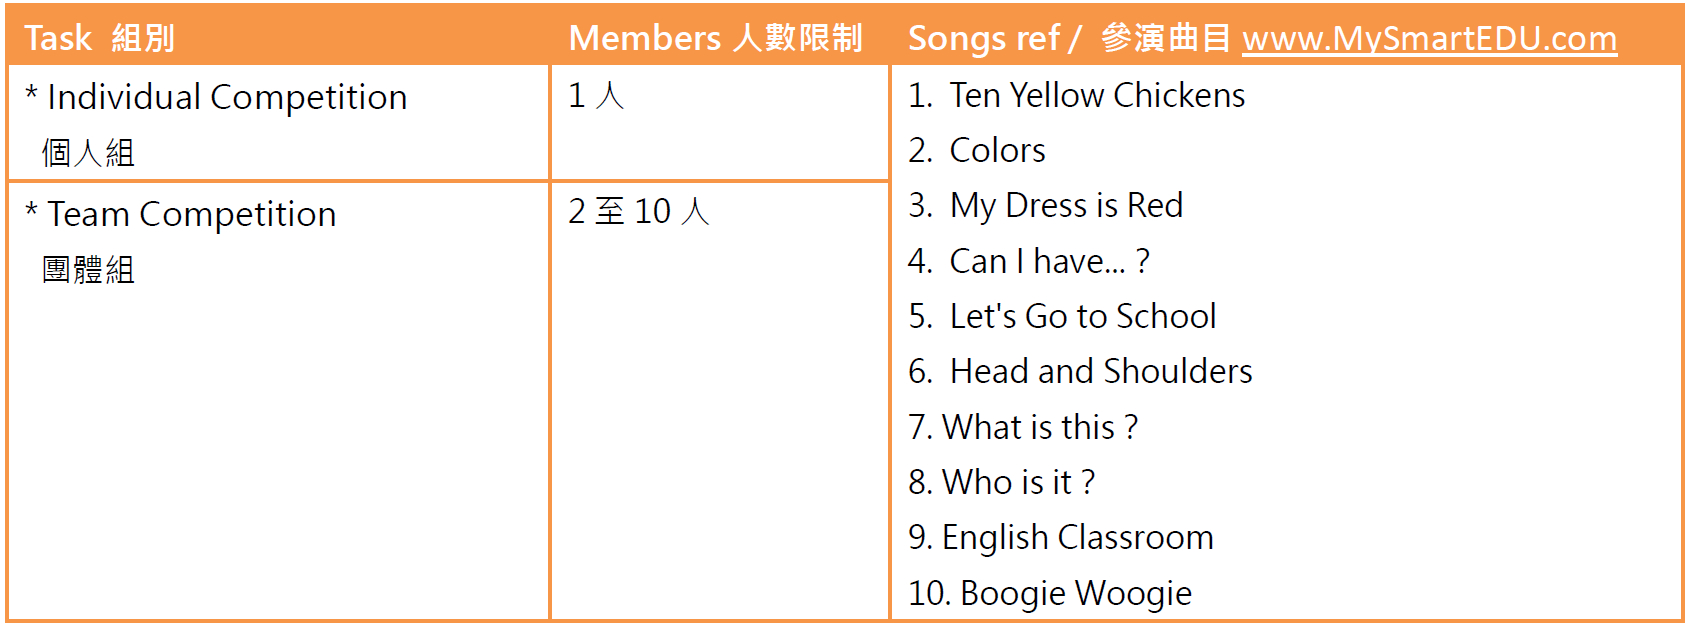 Tasks and Songs ref